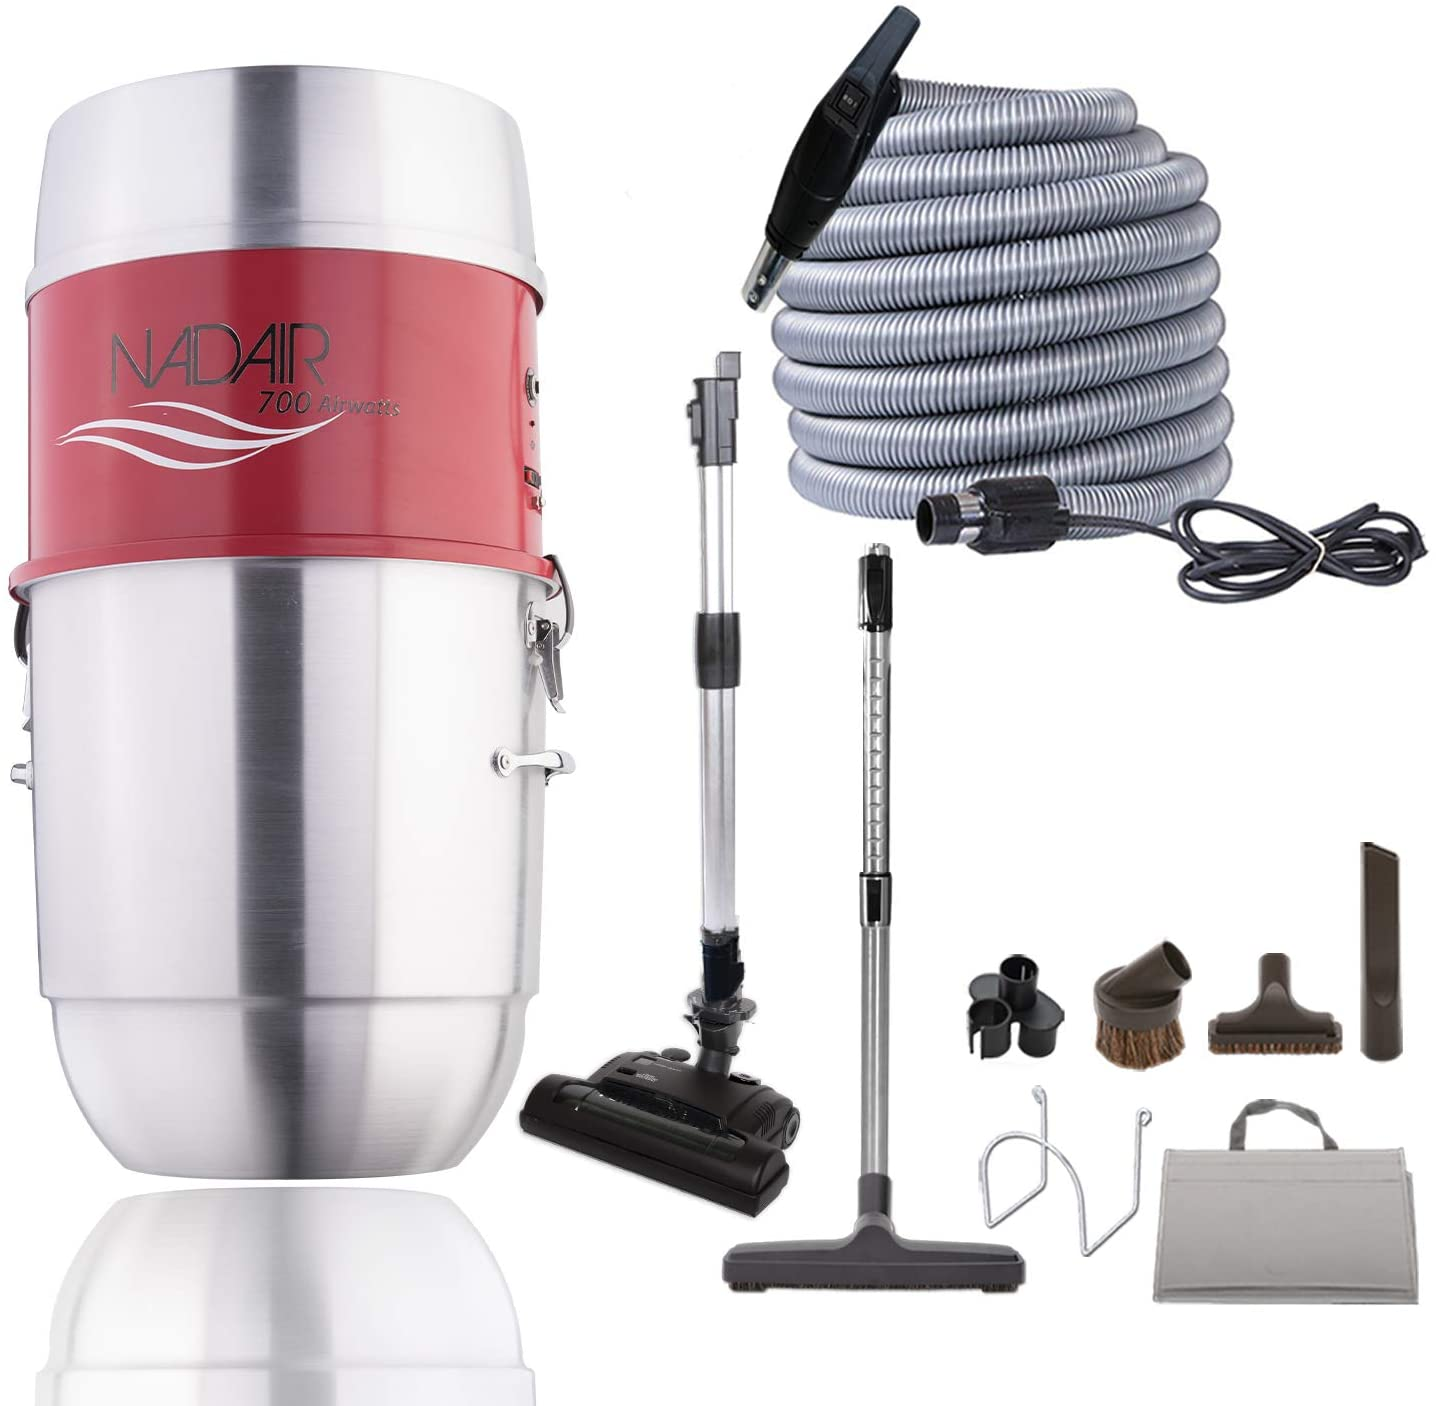 Nadair 700 AW Compact and Powerful Central Vacuum System